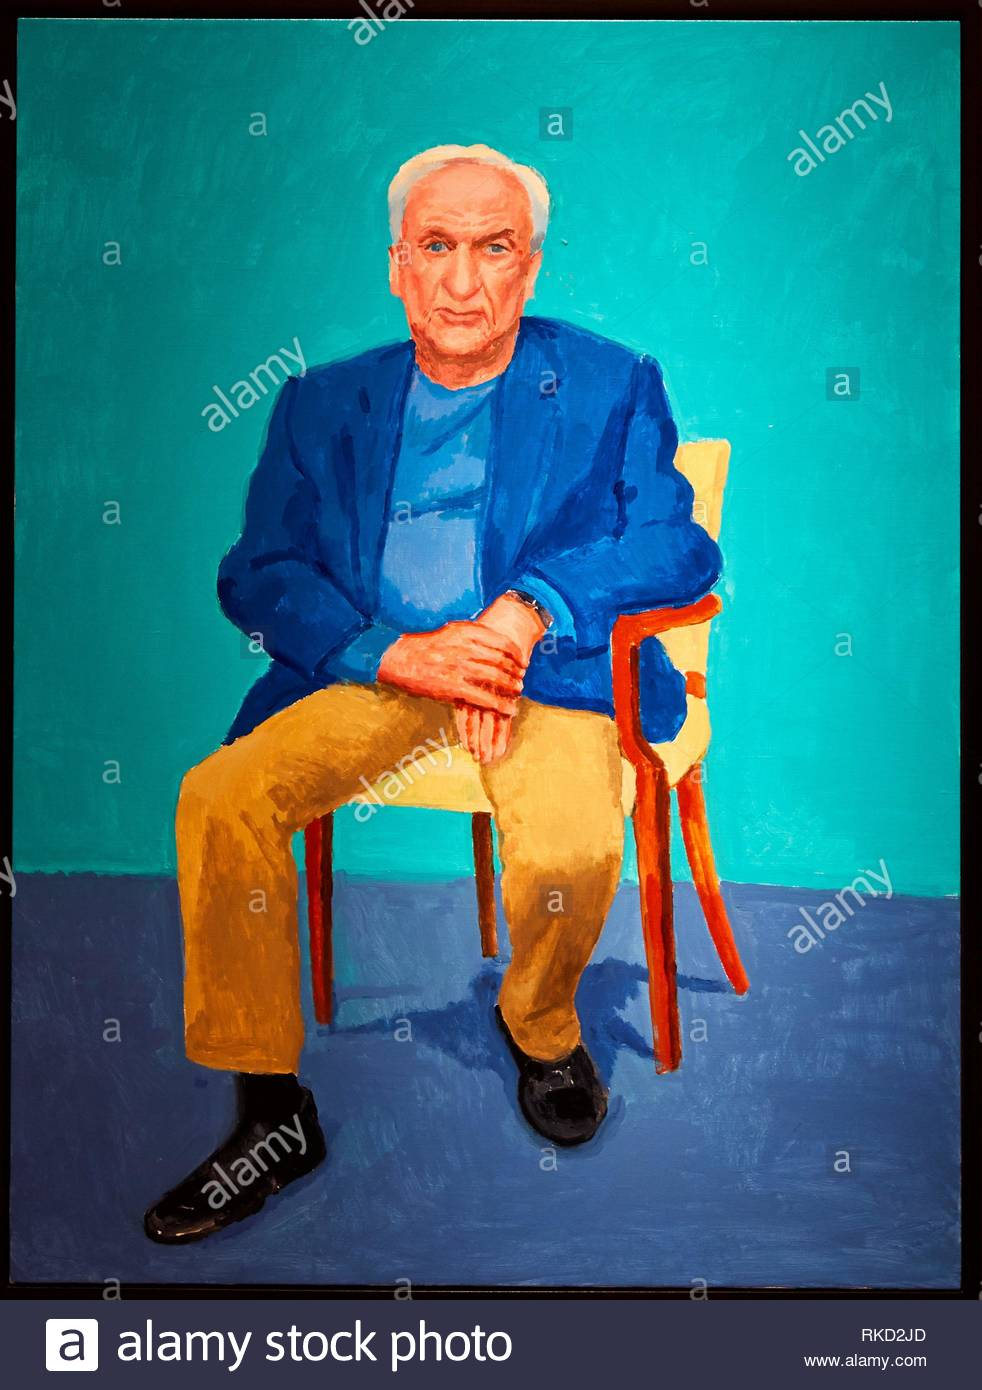 ´ Frank Gehry 24th, 25th February 2016 ´, ´82 Portraits and 1 Still-life´, David Hockney, Guggenheim Museum, Bilbao, Bizkaia, Basque Country, Spain, - Stock Image